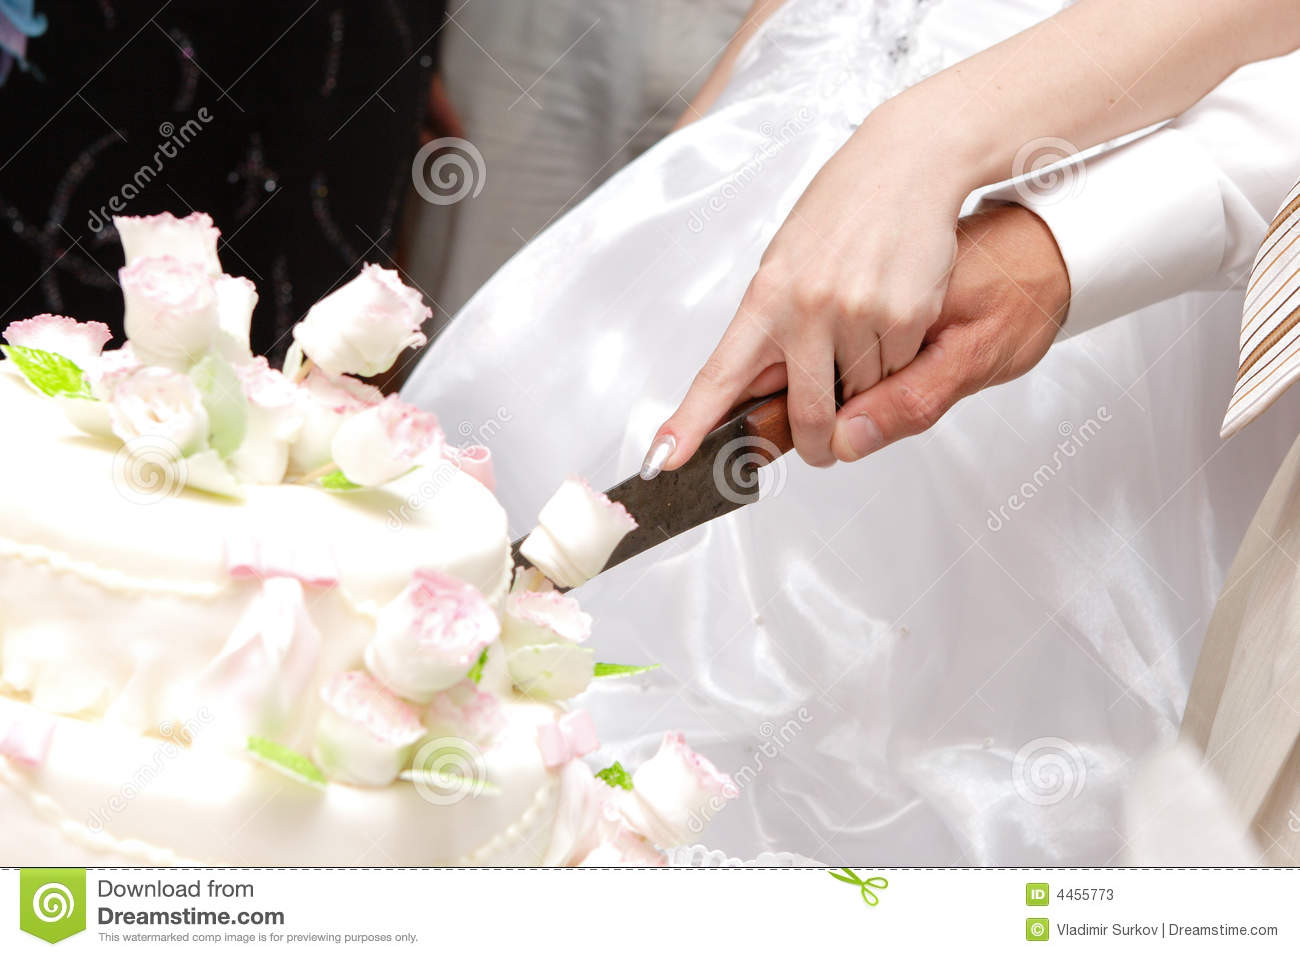 how to cut wedding cake bride and groom cutting a wedding cake stock image image of nuptials 15642